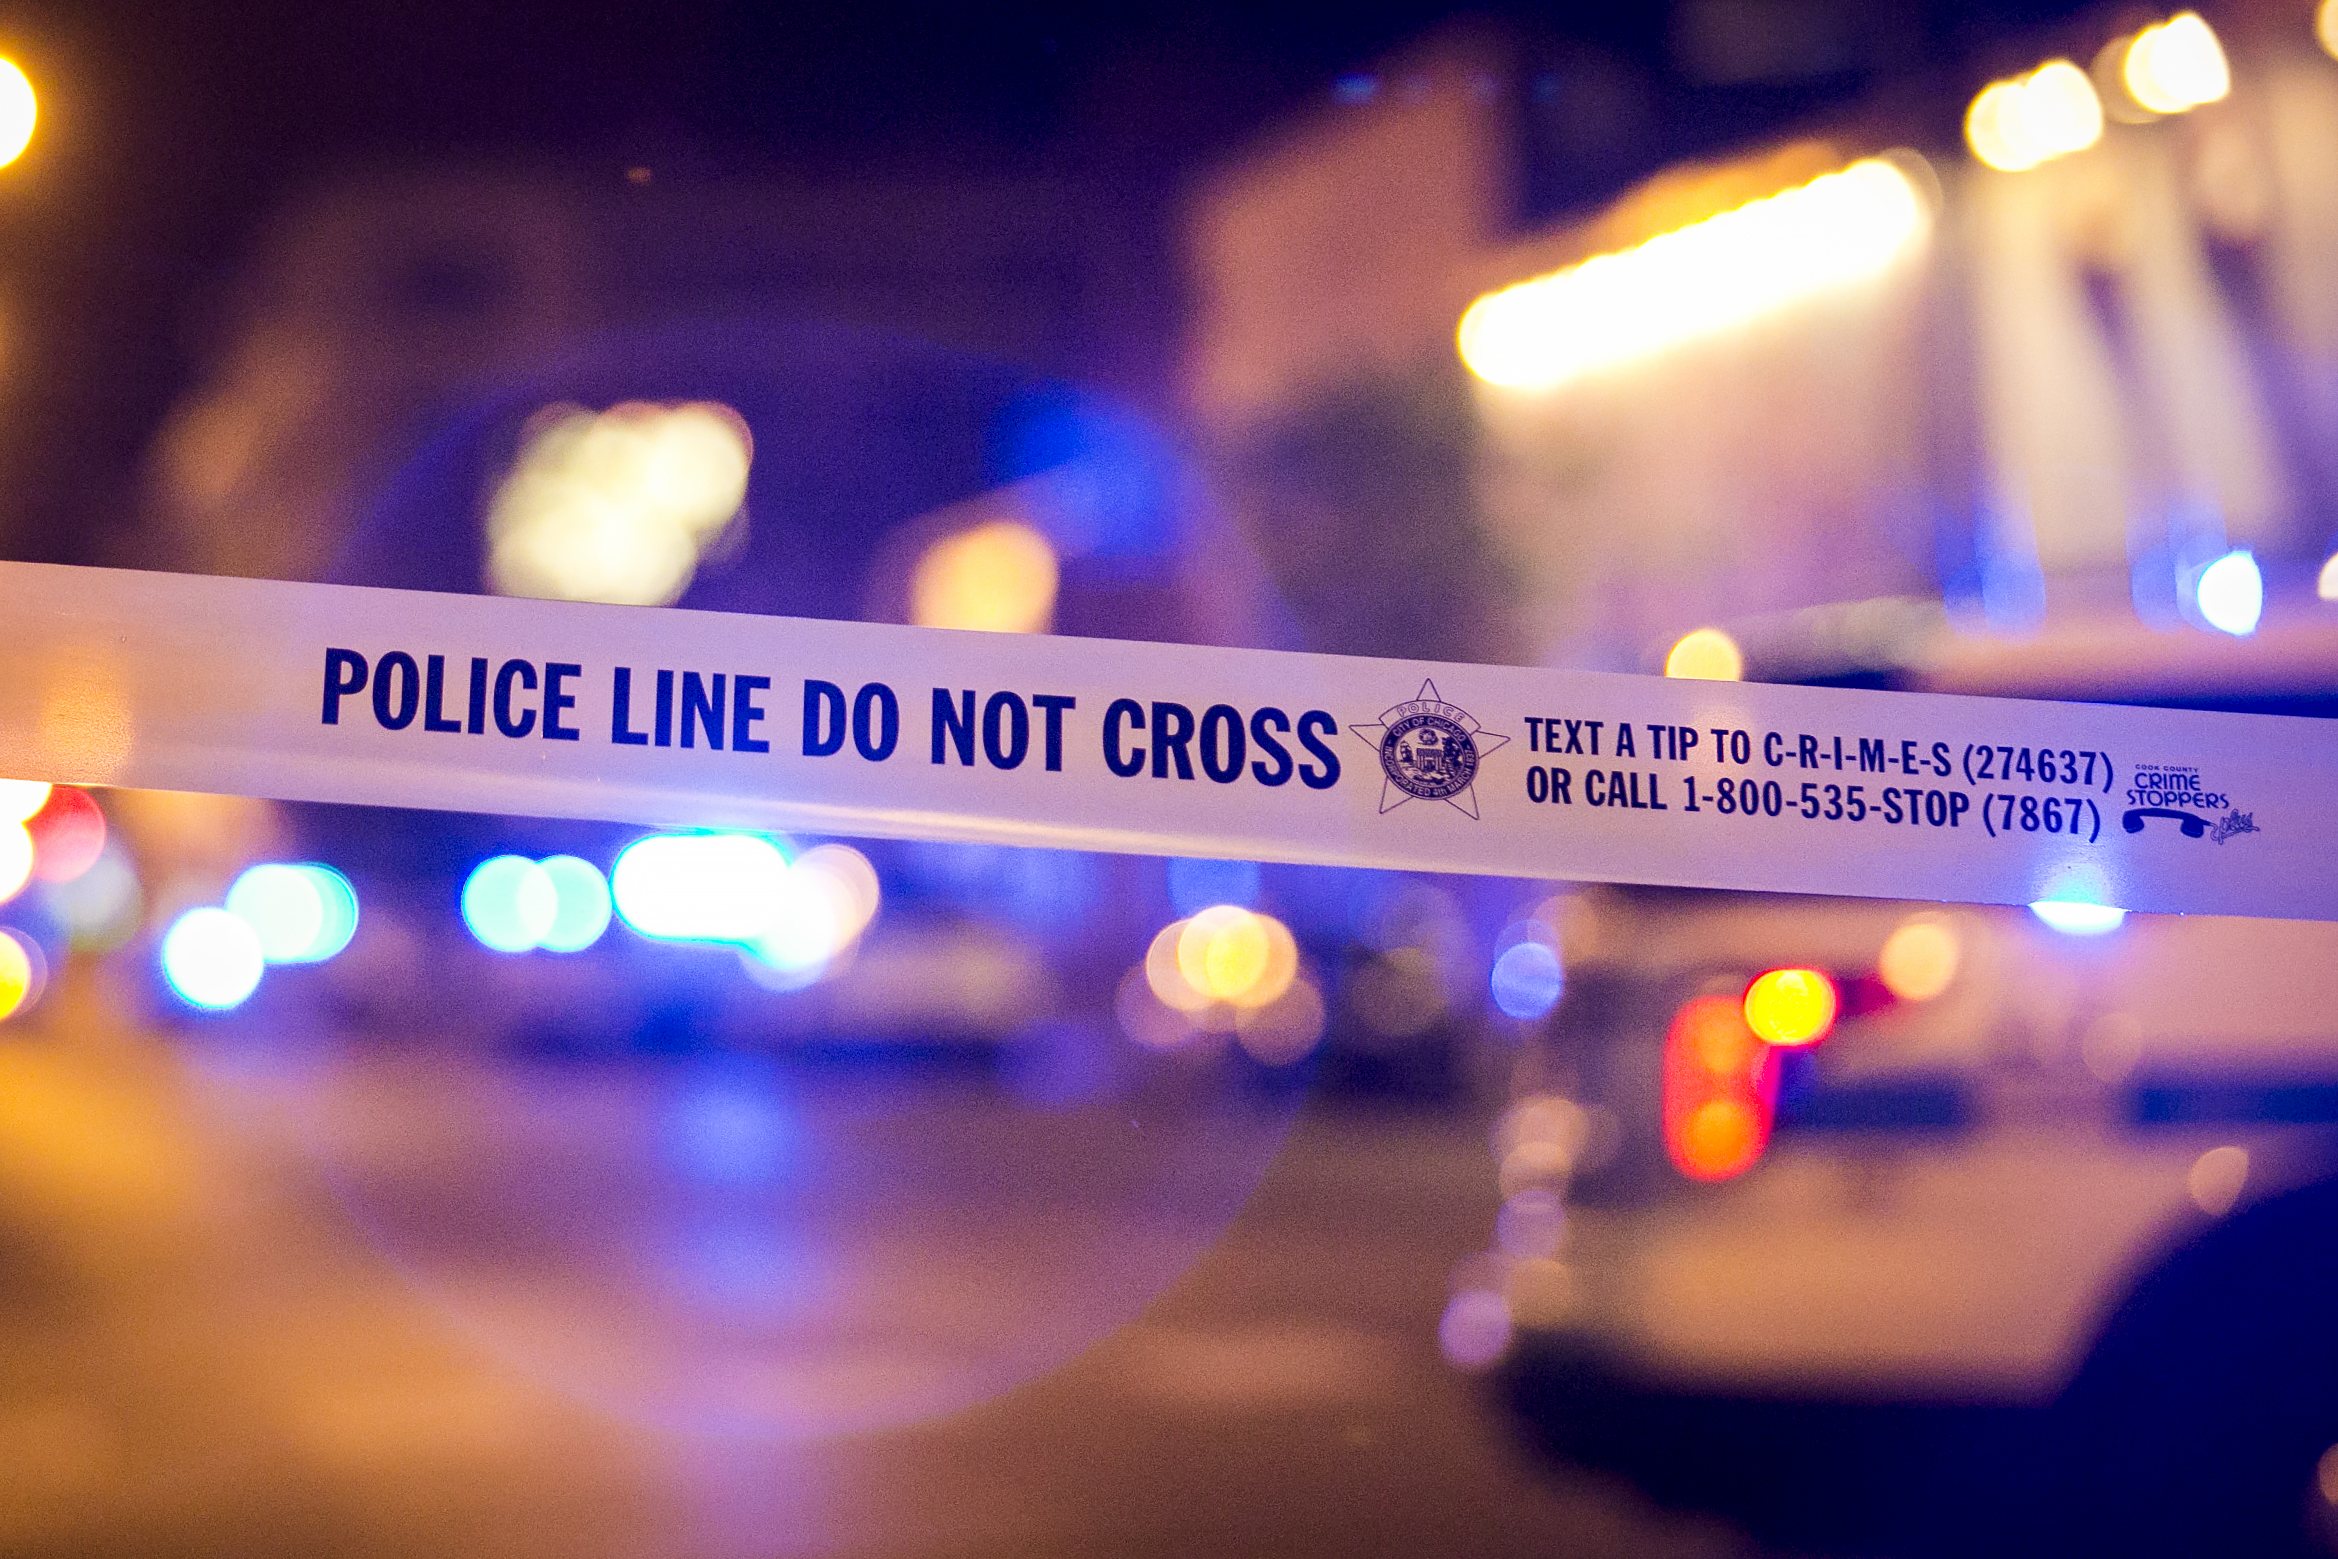 A suspect was taken into custody after two teenage boys were fatally shot in South Chicago, officials announced June 24, 2020.